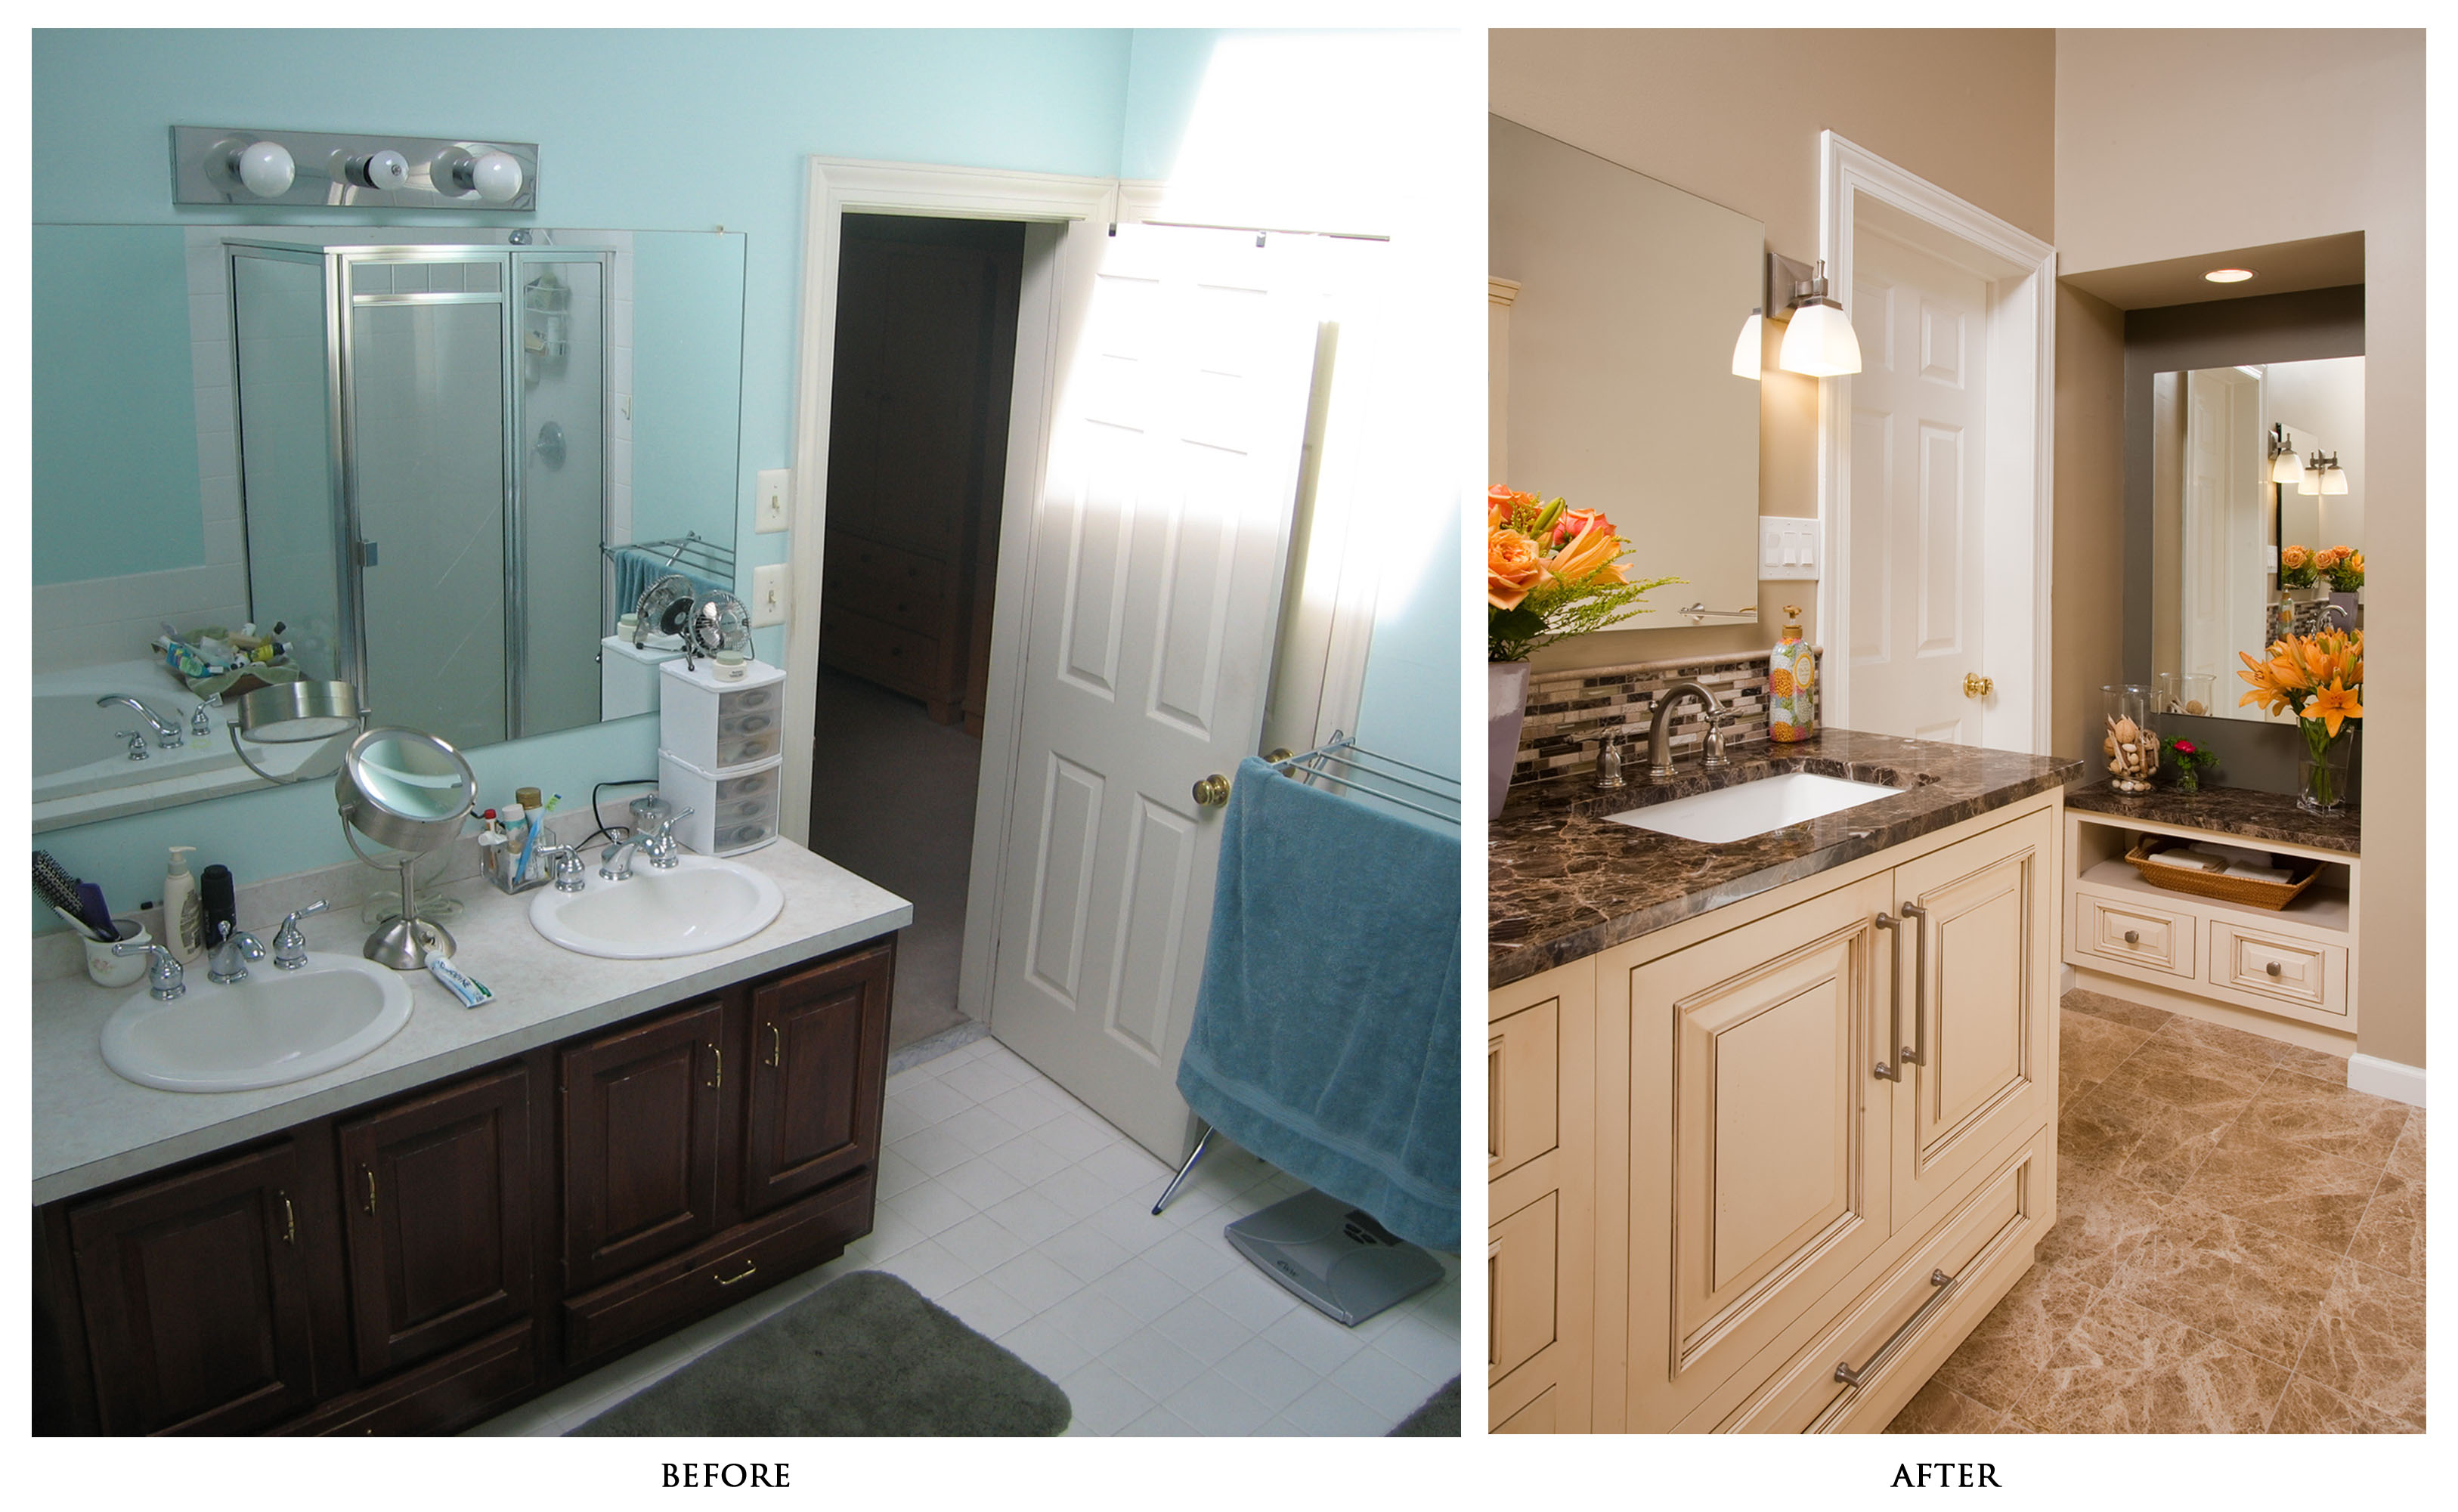 bathroom remodel plans. Before-and-after-diy-bathroom-renovation-ideas-marvelous-diy-bathroom- Remodel-photos-design-inspirations-diy-bathroom-remodel-project-plan-diy- Bathroom- Bathroom Remodel Plans